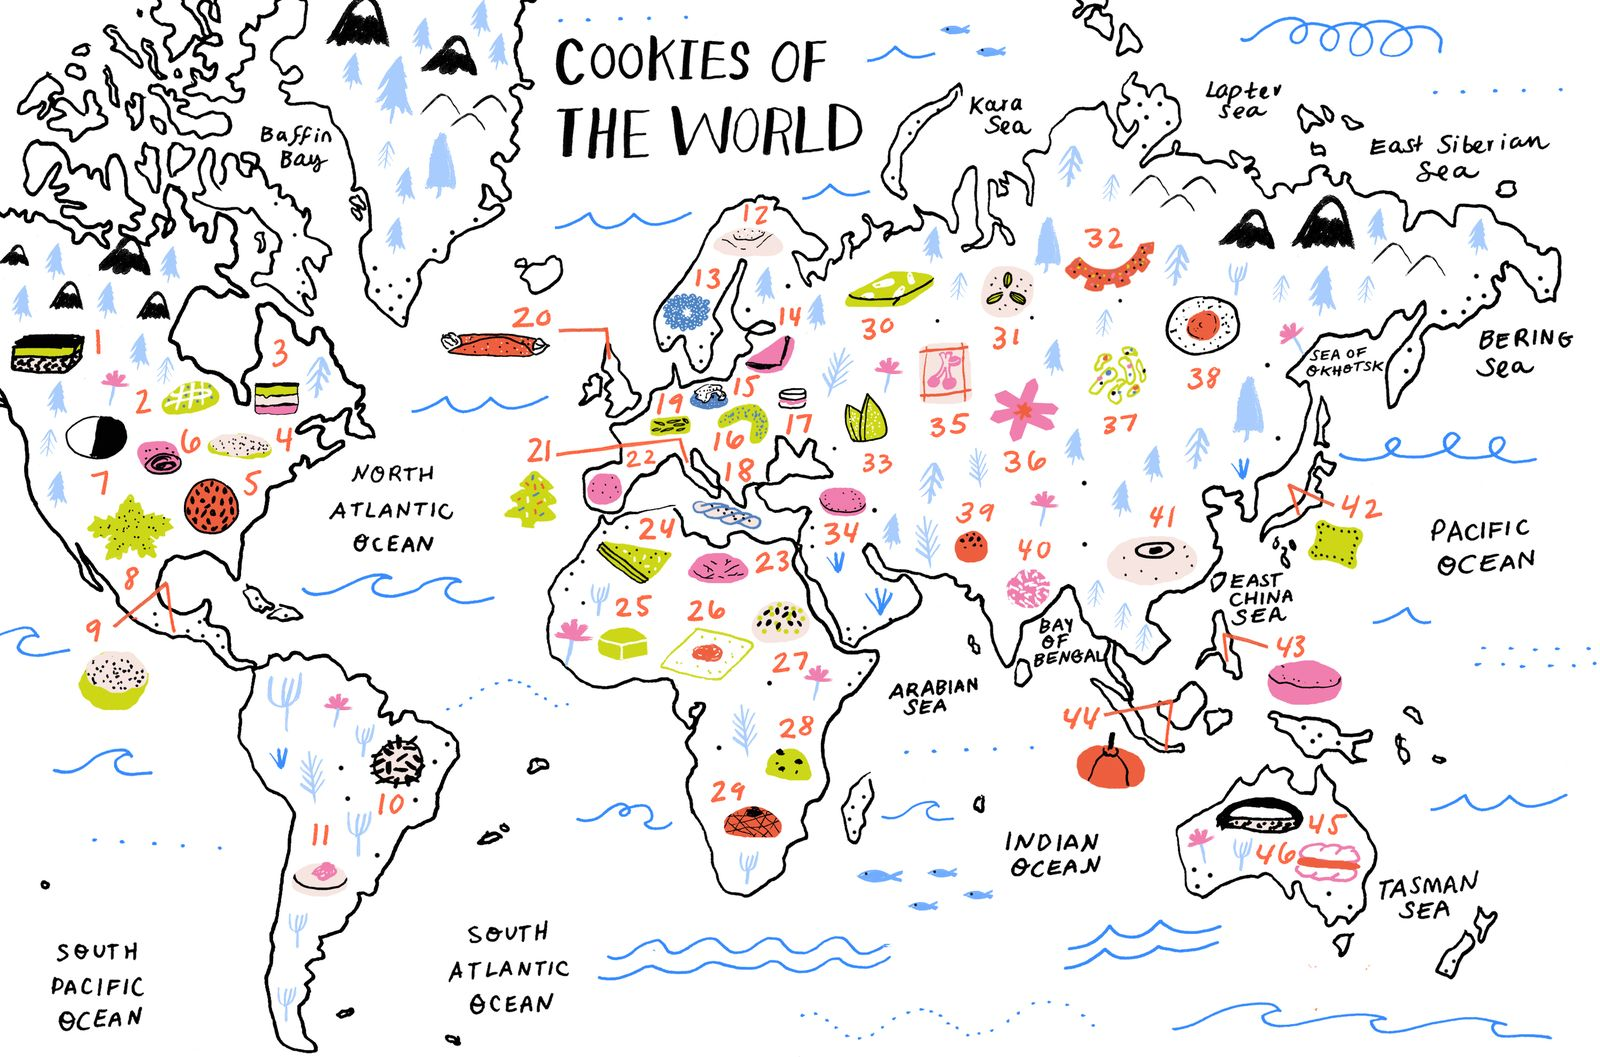 Dying For Chocolate Cookies Of The World Great Map From